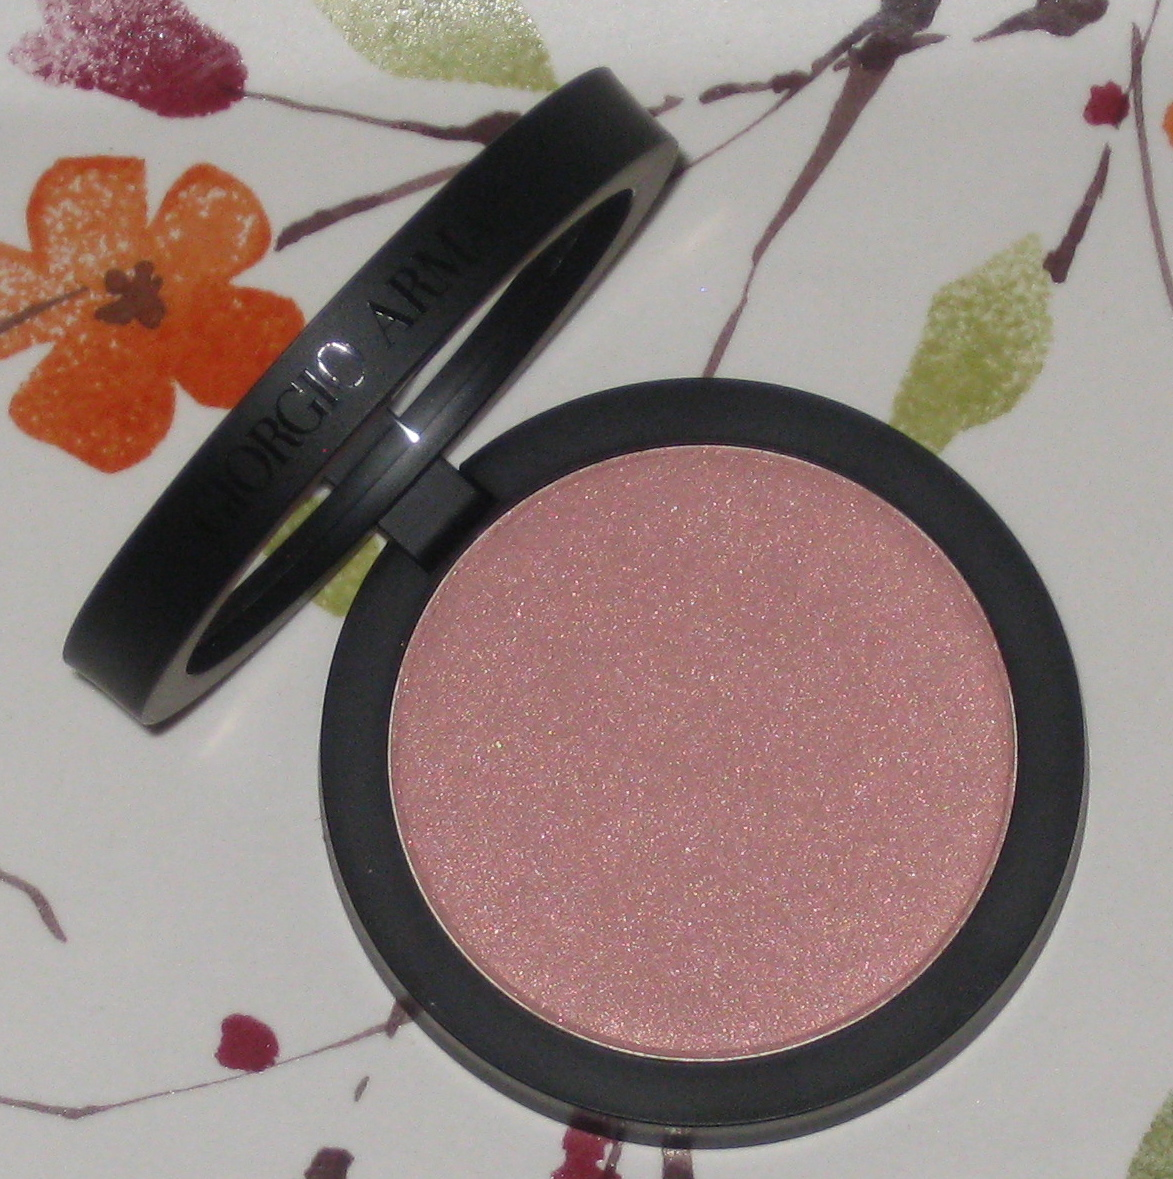 Giorgio Armani Sheer Blush 10 Beige review and swatches. - If Makeup ... 29ea3a506a20